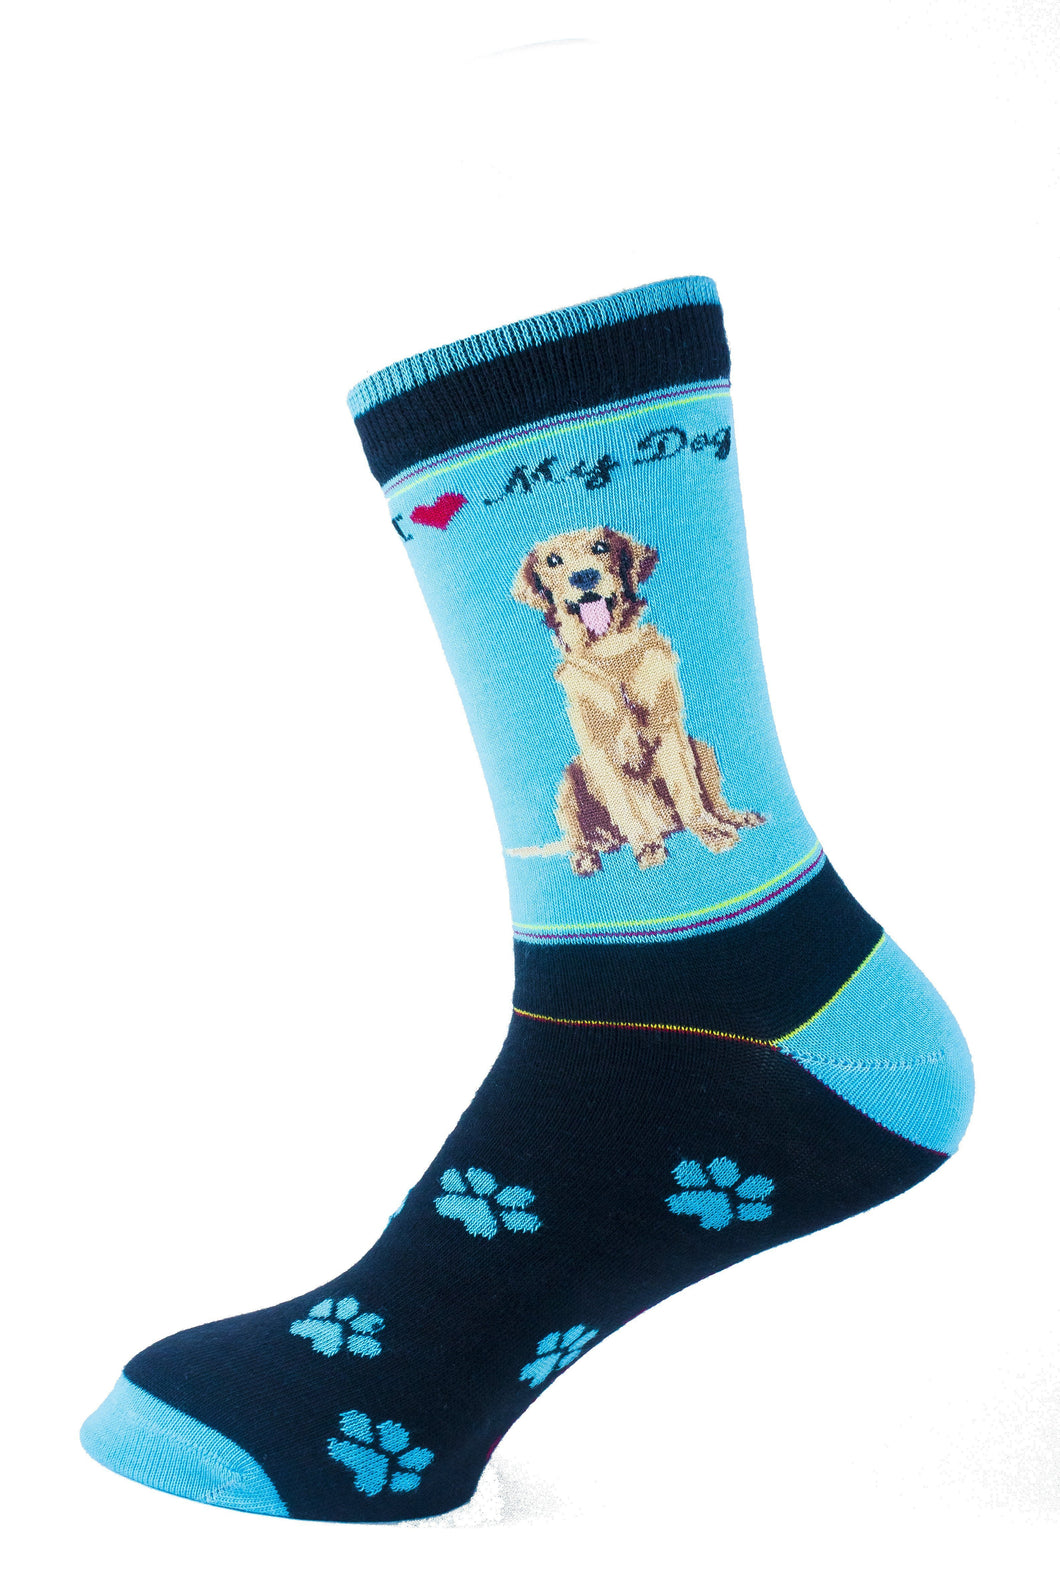 Golden Retriever Dog Socks Signature - samnoveltysocks.com